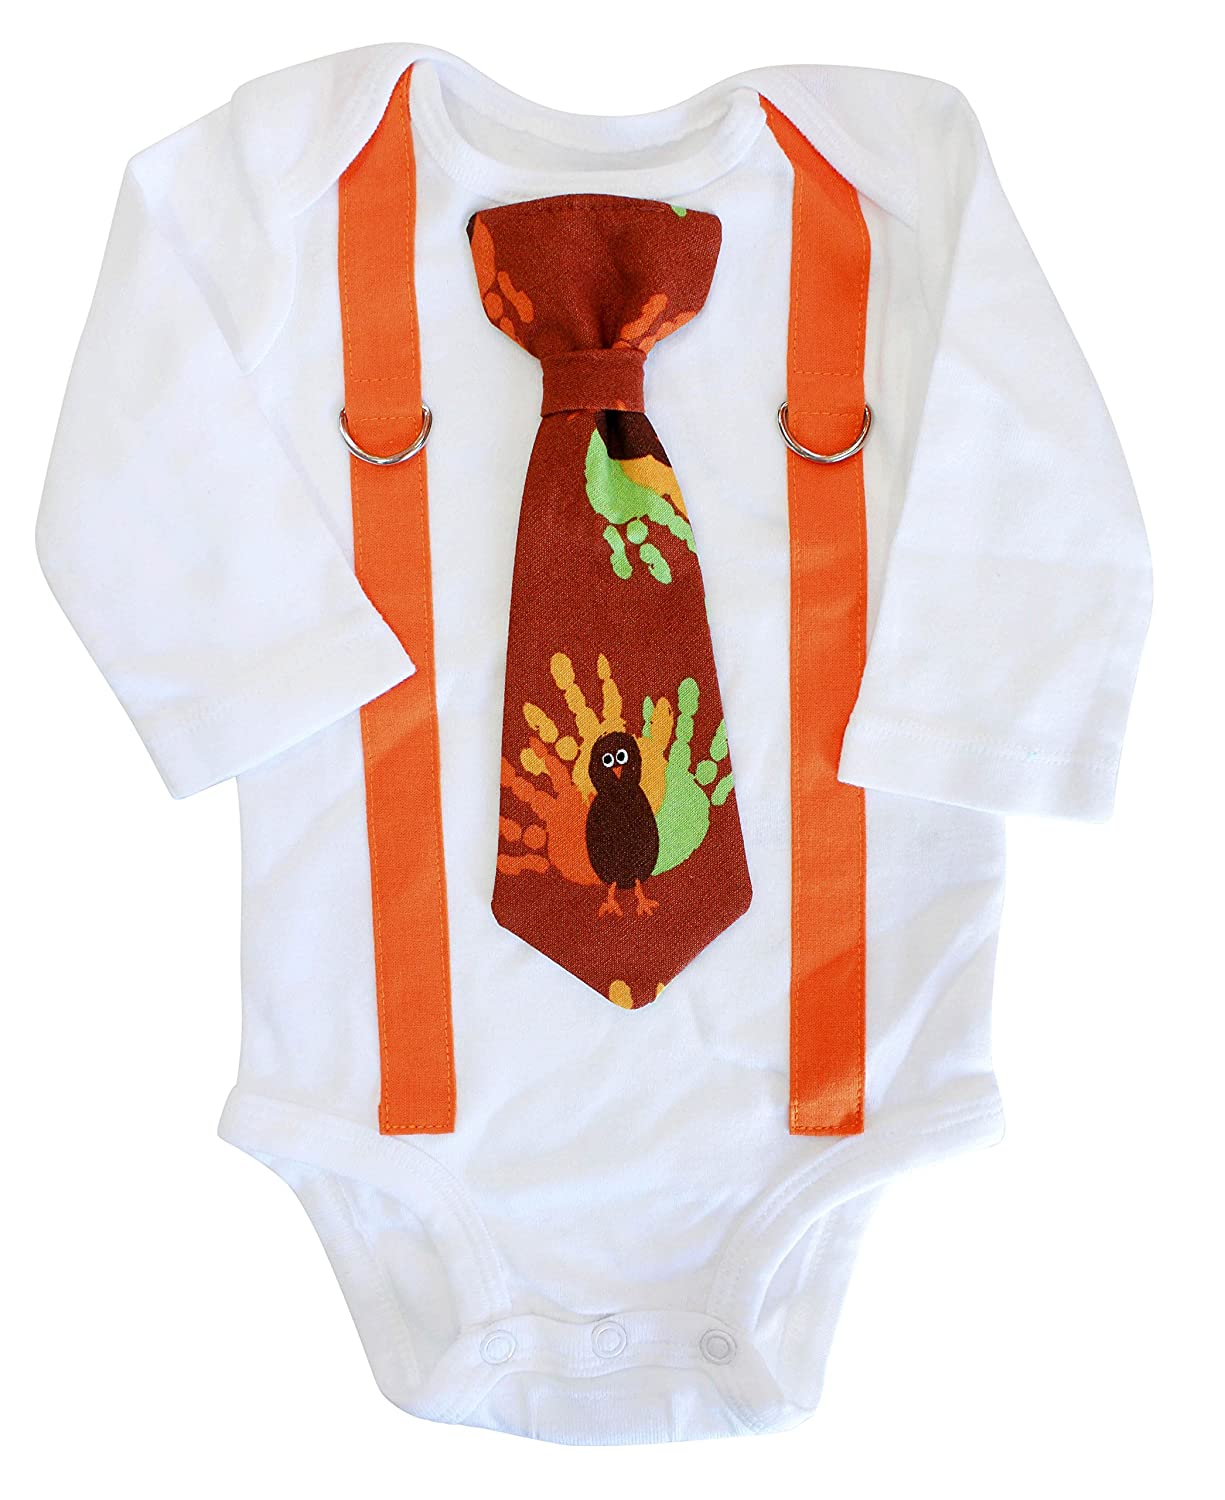 532bb0741d4b Amazon.com: Baby Boy Thanksgiving Outfit, Turkey tie, Newborn thanksgiving  outfit, Thanksgiving baby clothes: Clothing